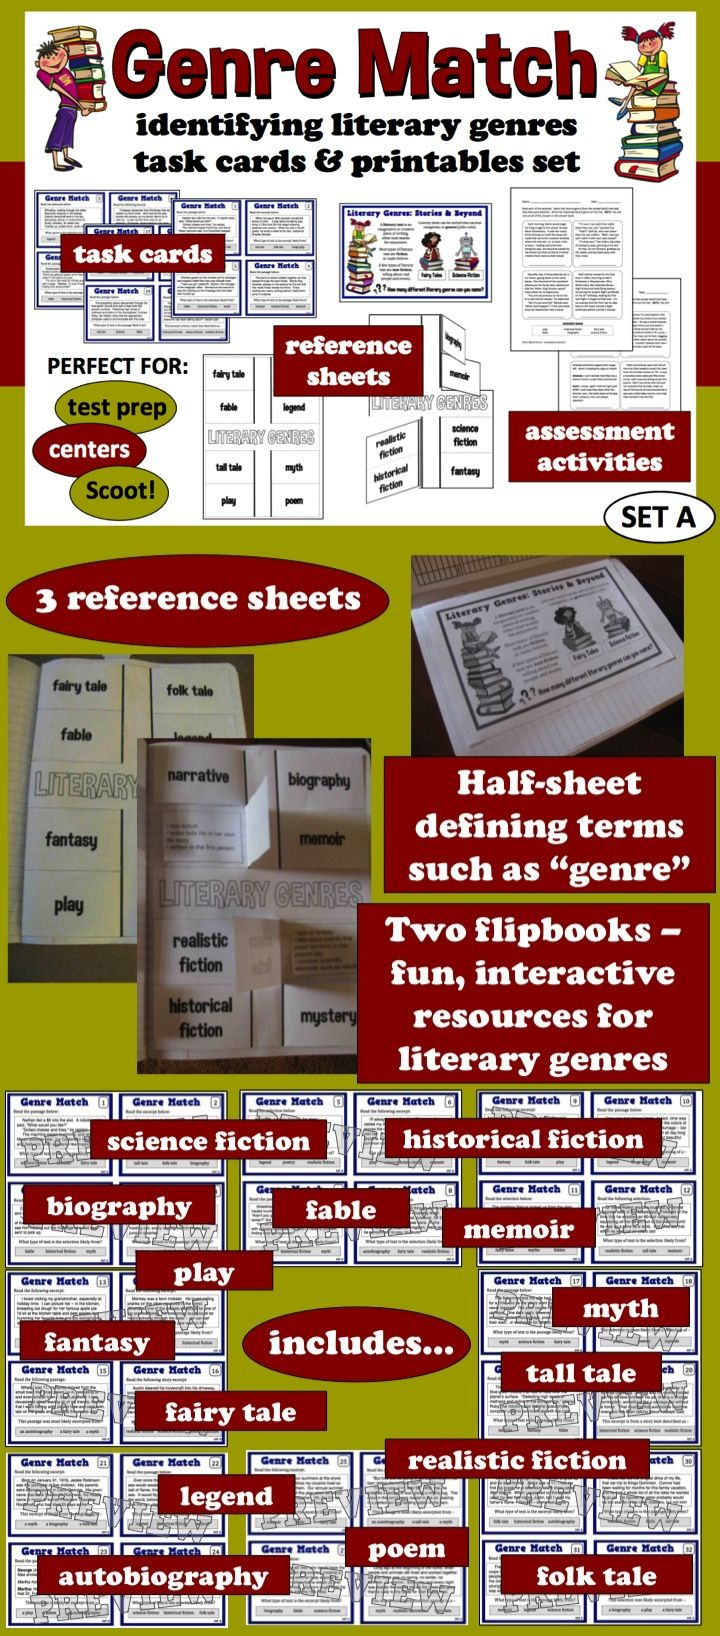 Task cards, reference sheets, and assessment activities for identifying literary genres. $